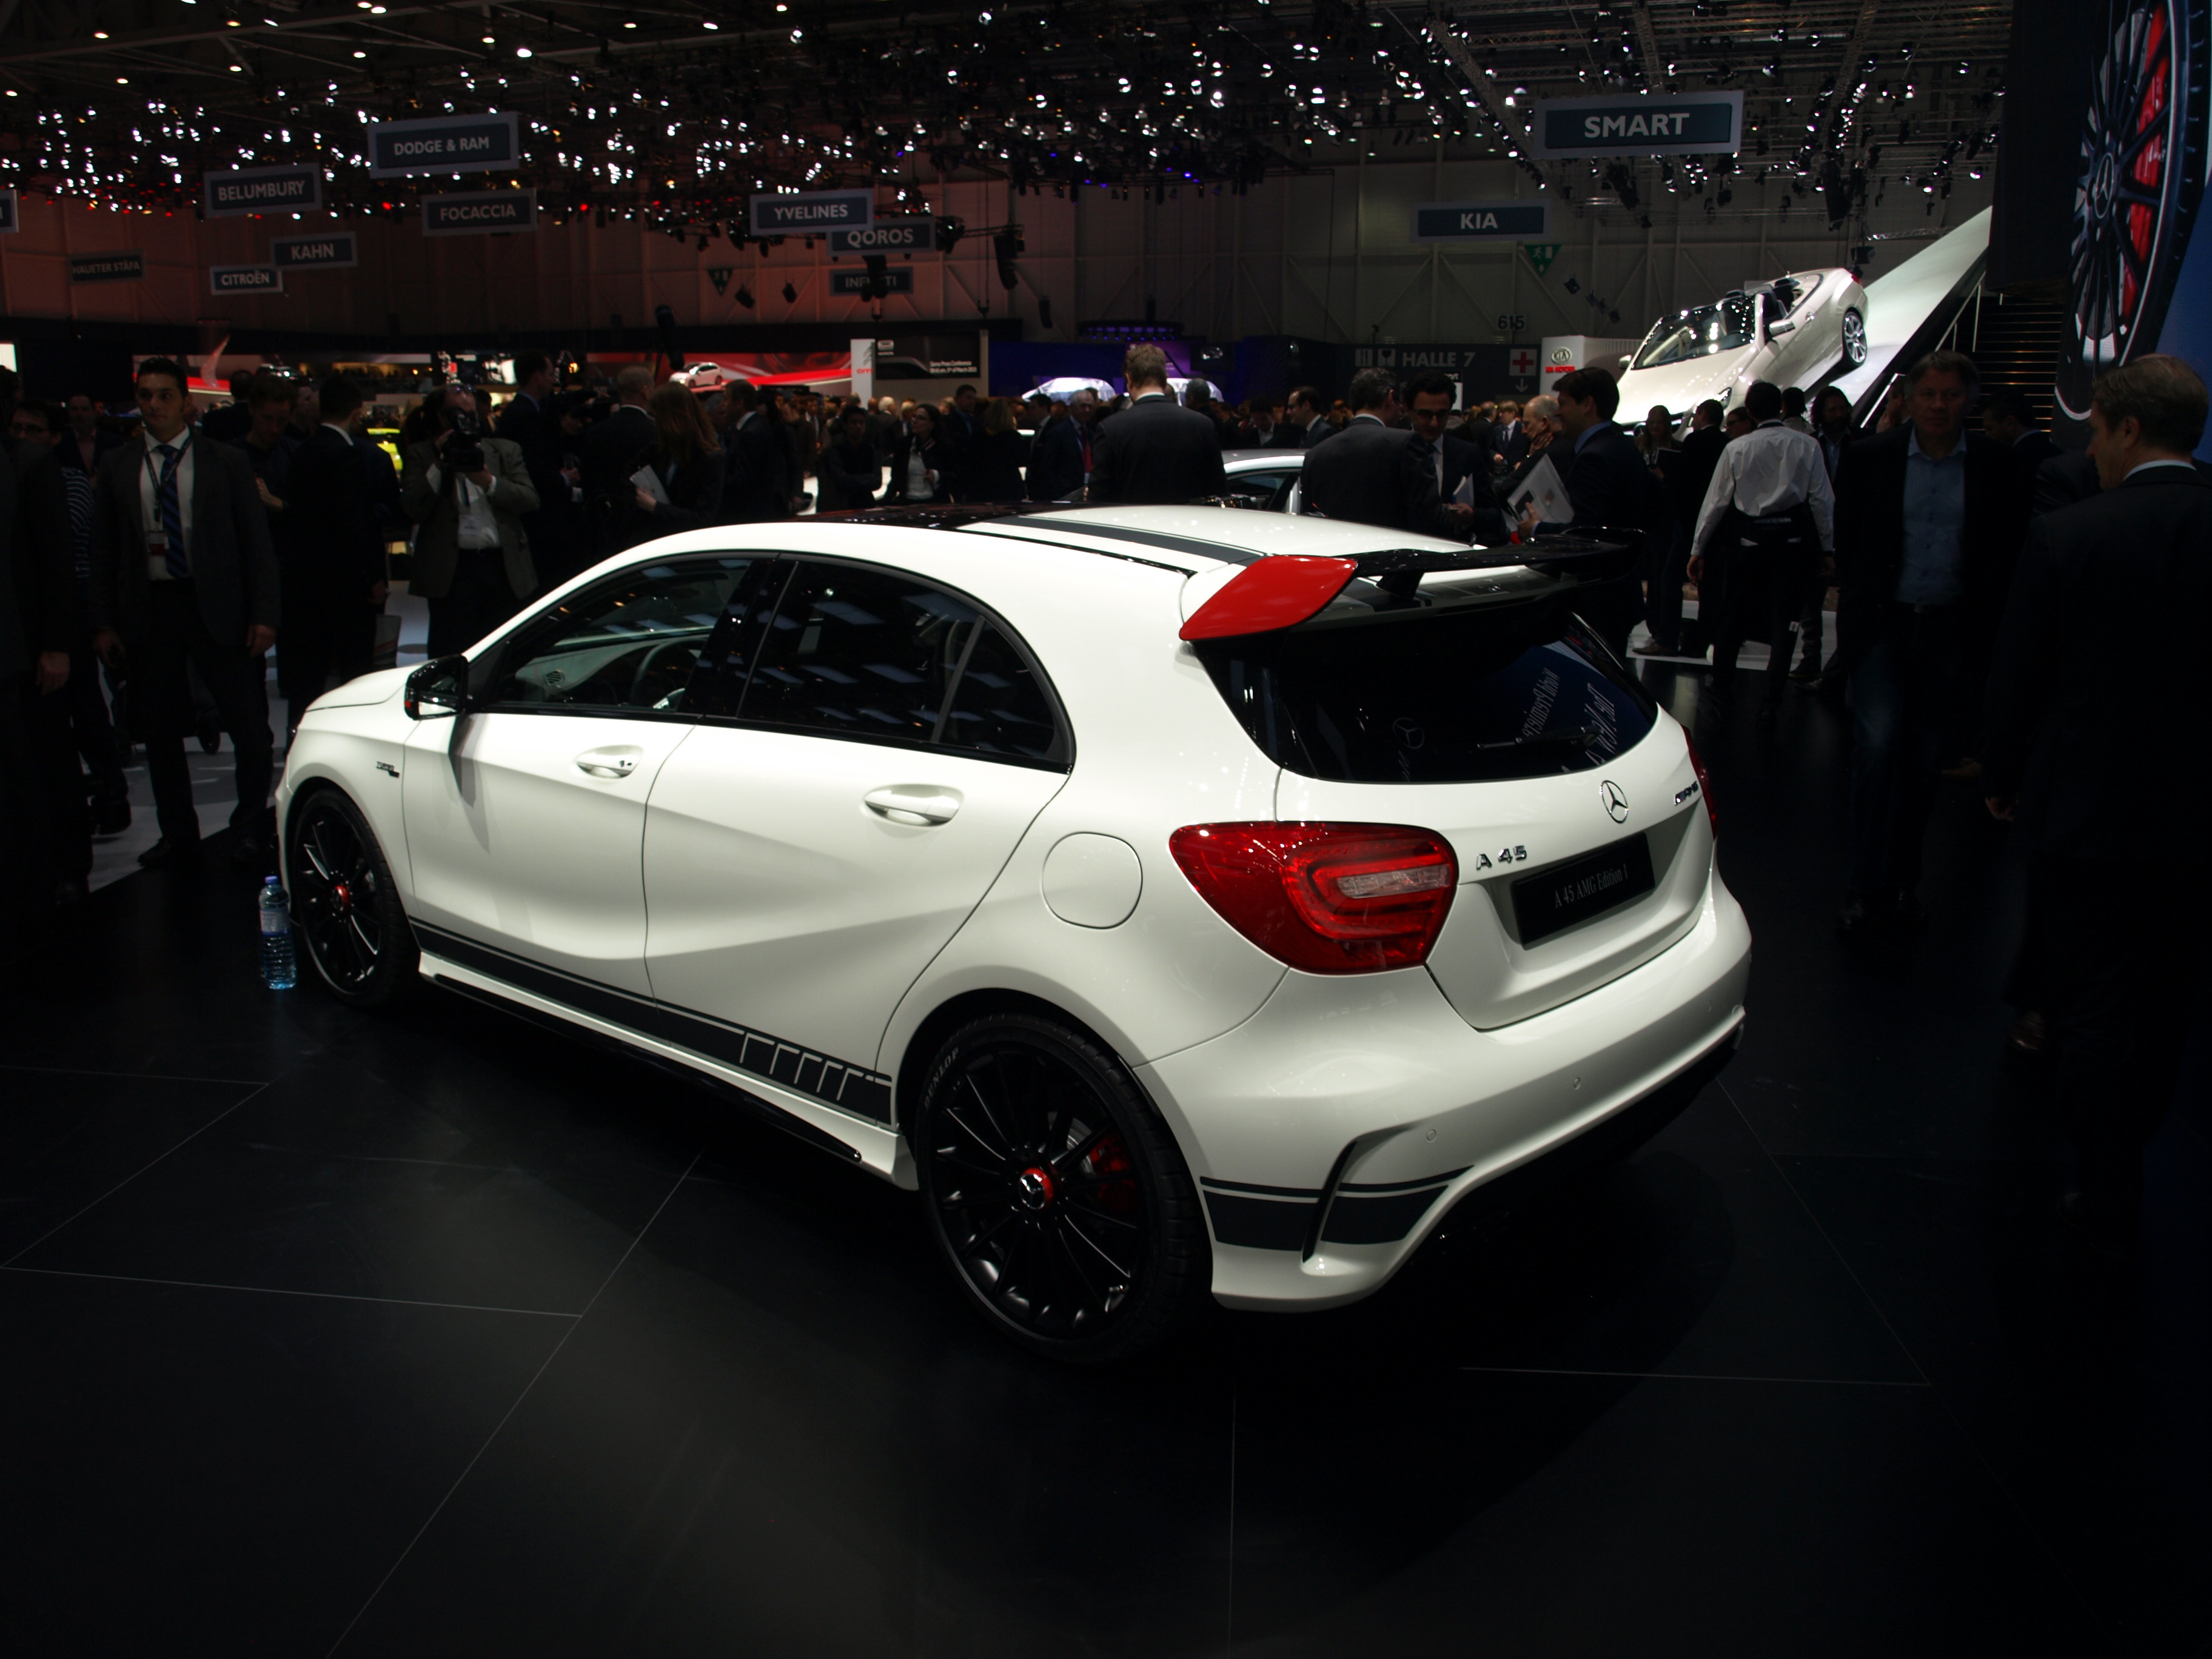 vid o en direct du salon de gen ve 2013 mercedes classe a45 amg la djeun 39 s attitude. Black Bedroom Furniture Sets. Home Design Ideas